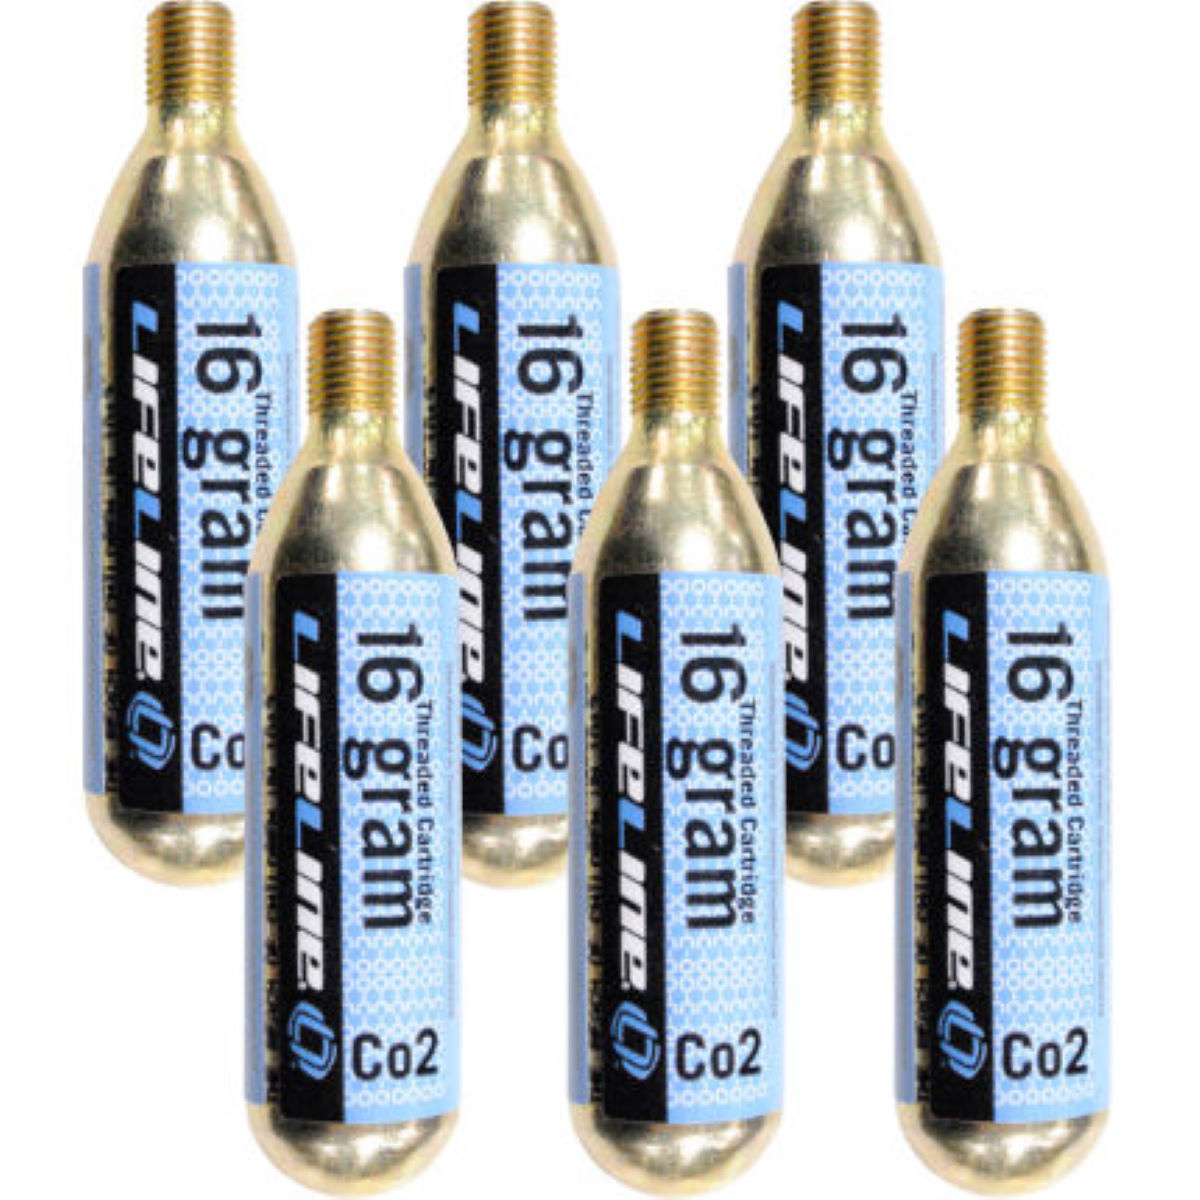 LifeLine 16g CO2 Inflator Cartridges - Pack of 6